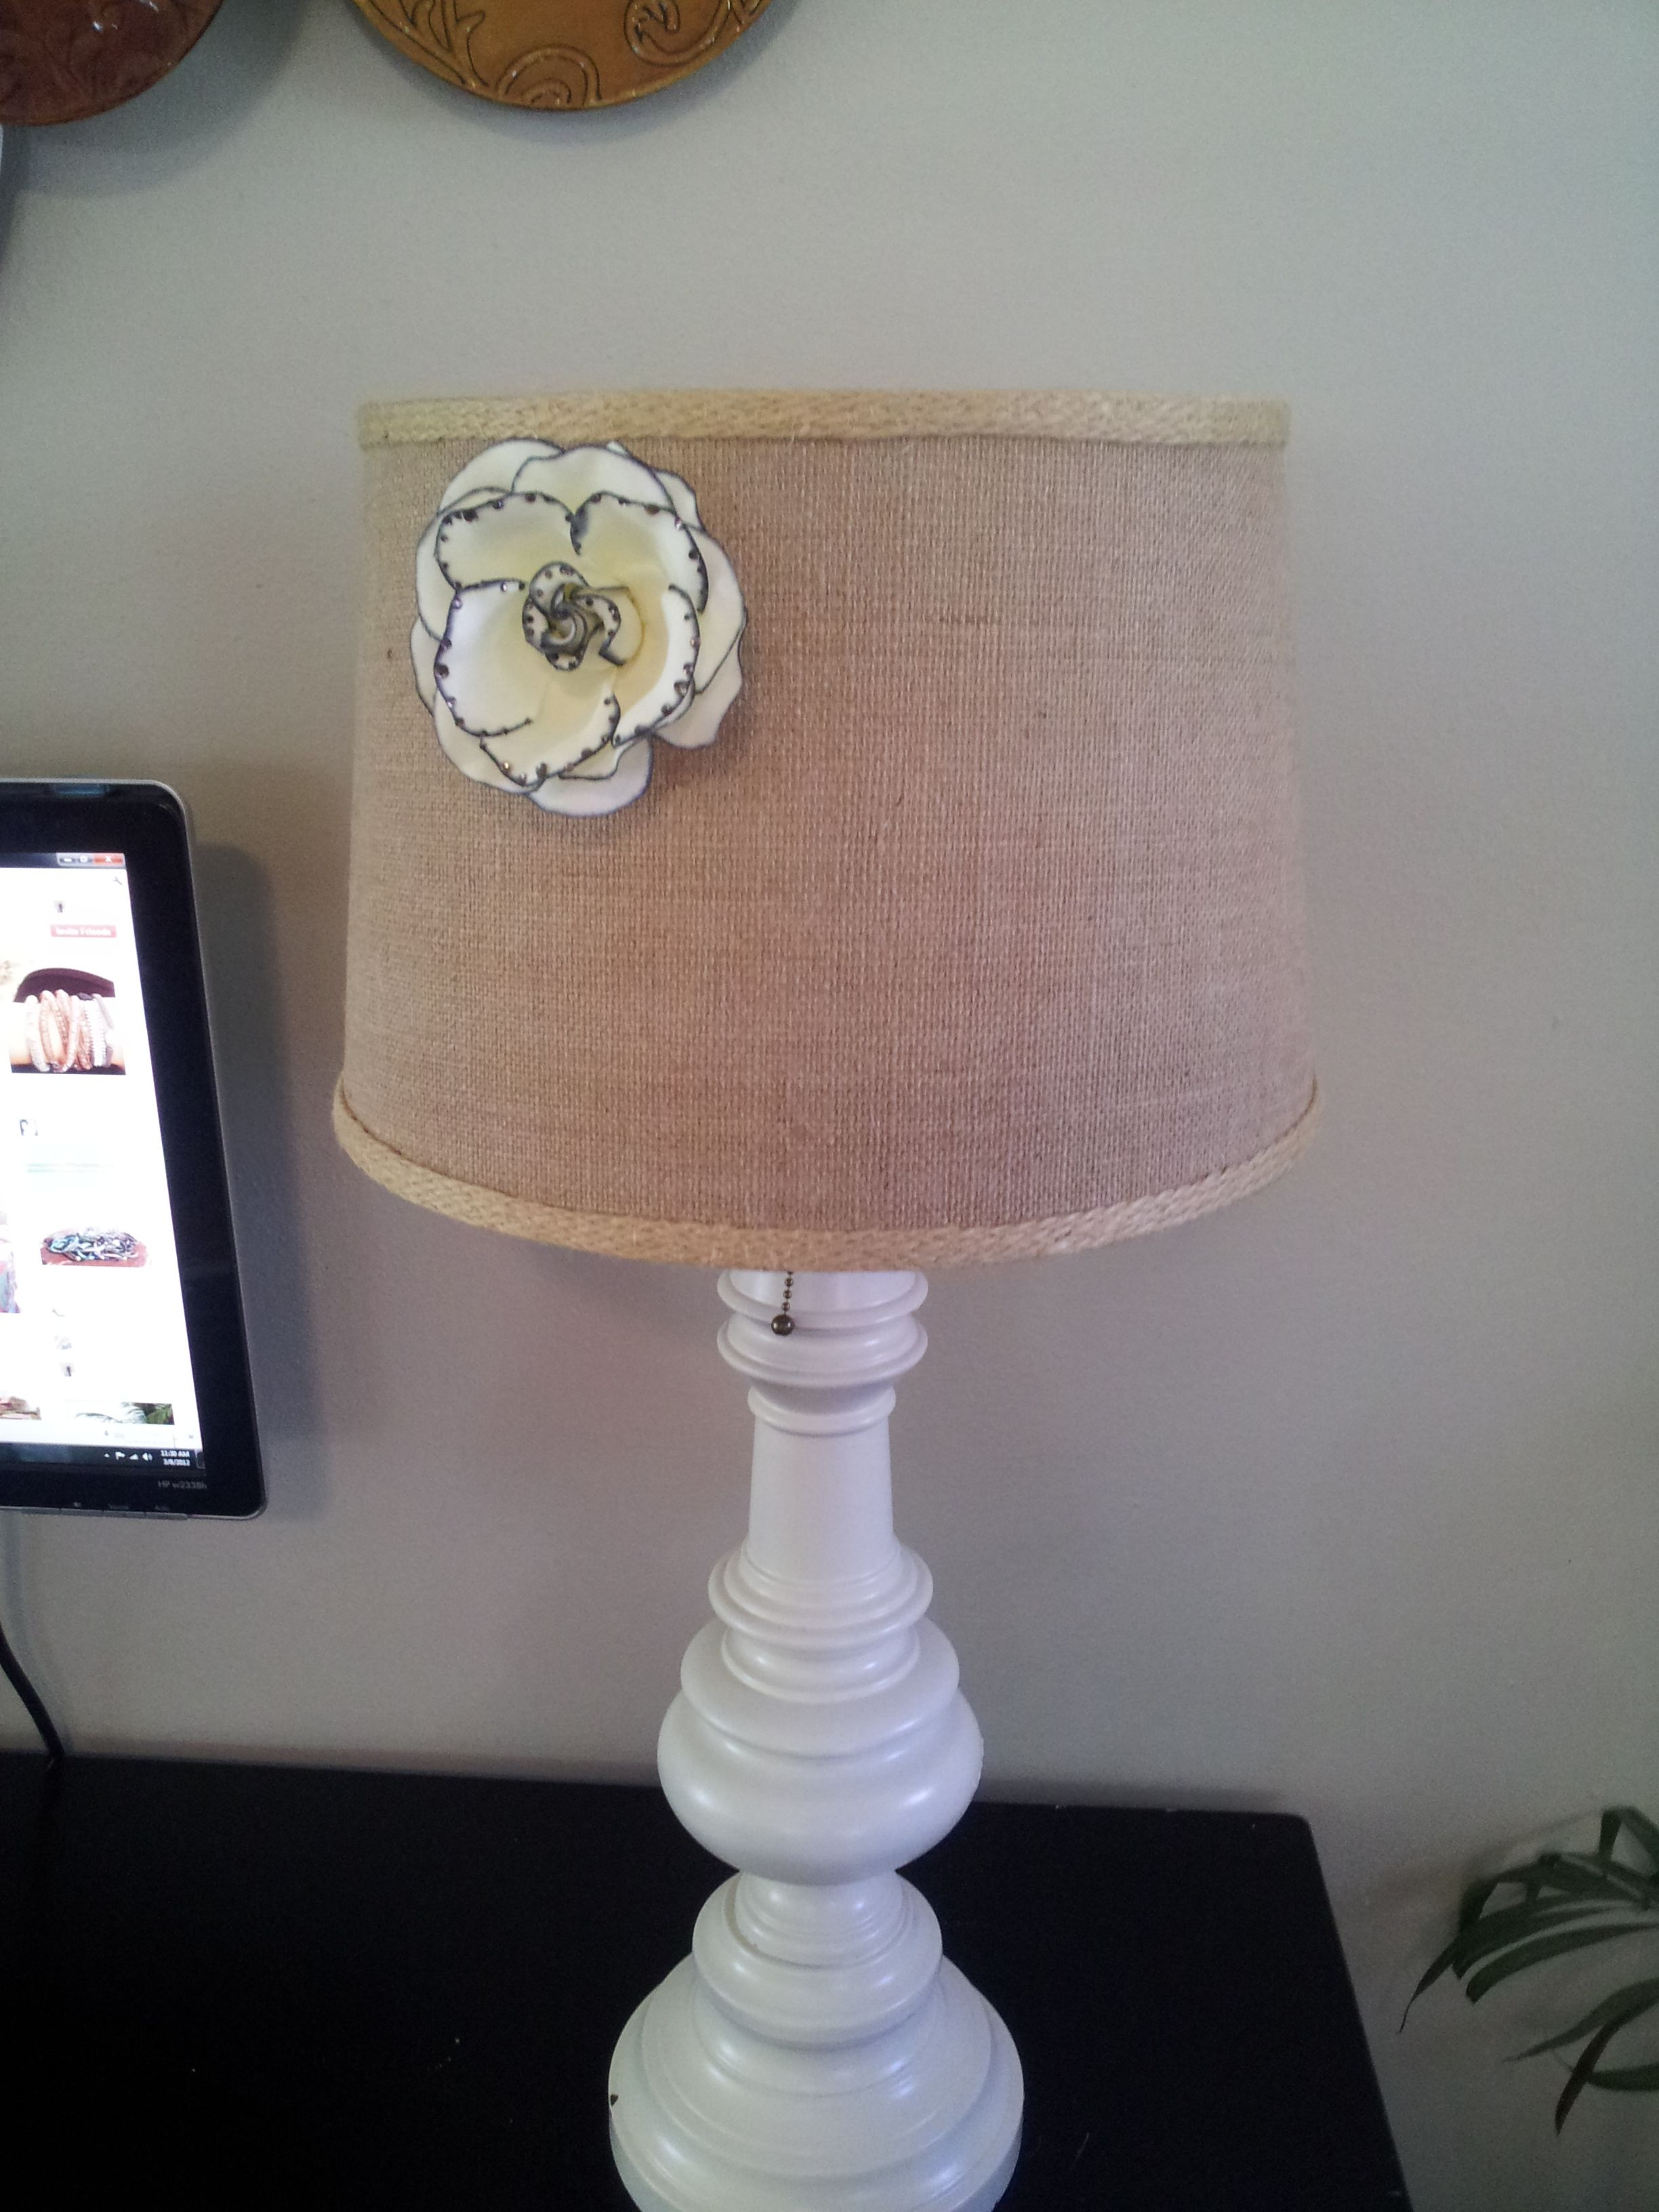 Hobby Lobby Lamp Shades Extraordinary Took A Cute Flower Barrette I Found At Hobby Lobby And Hot Glued It Design Inspiration